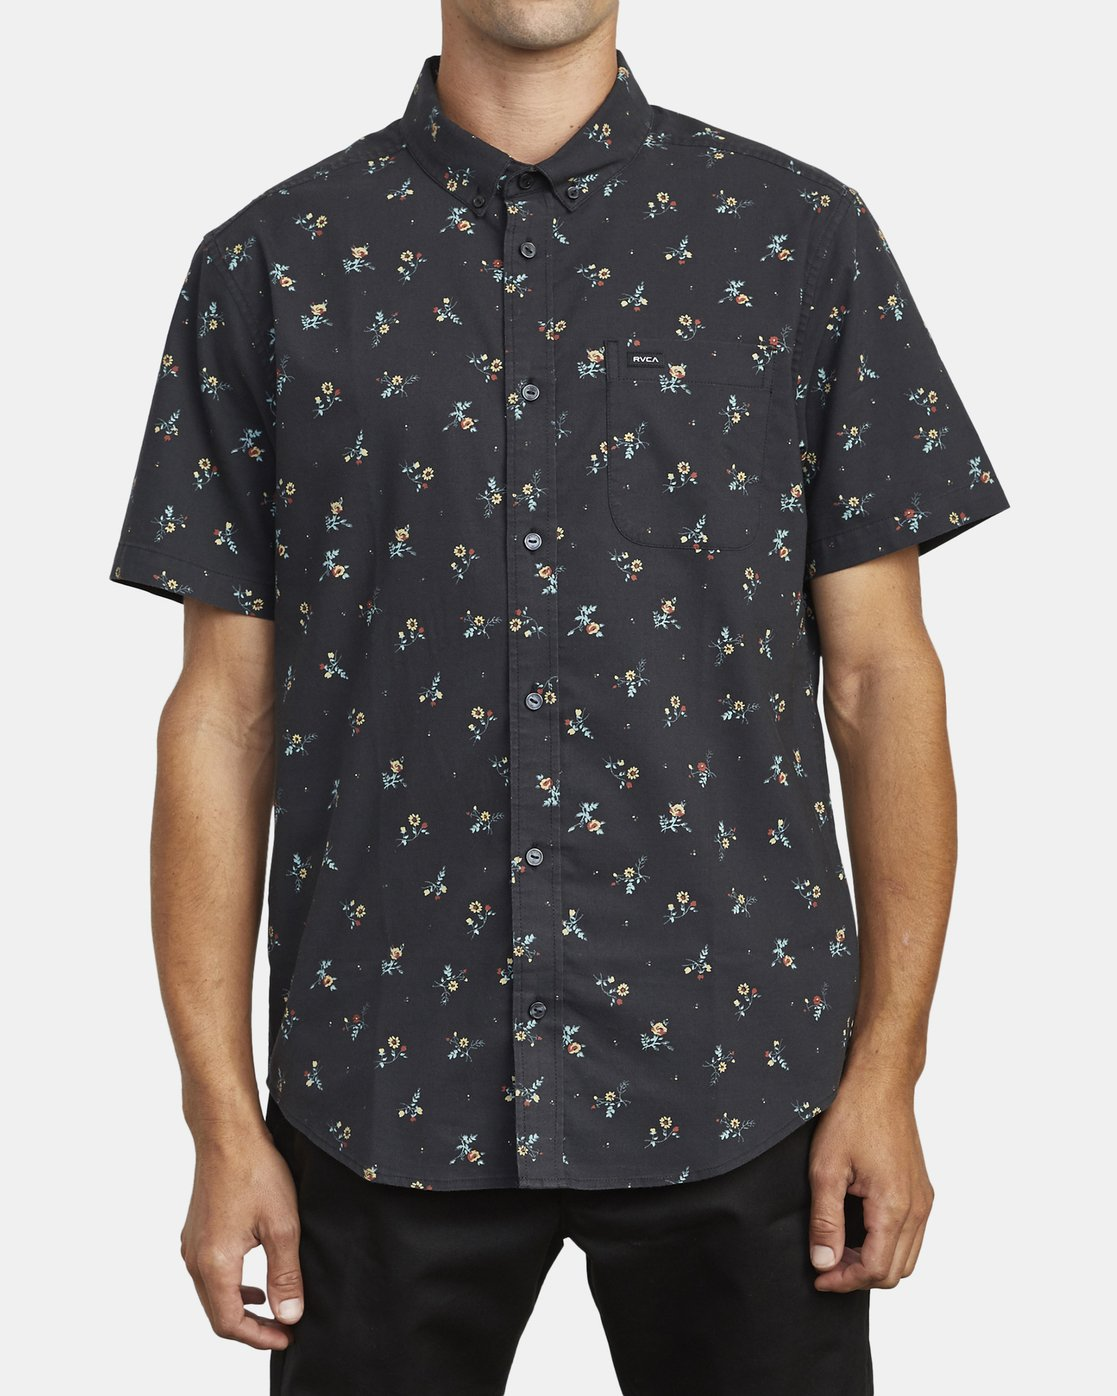 0 THAT'LL DO PRINT BUTTON-UP SHIRT Black M502VRTP RVCA